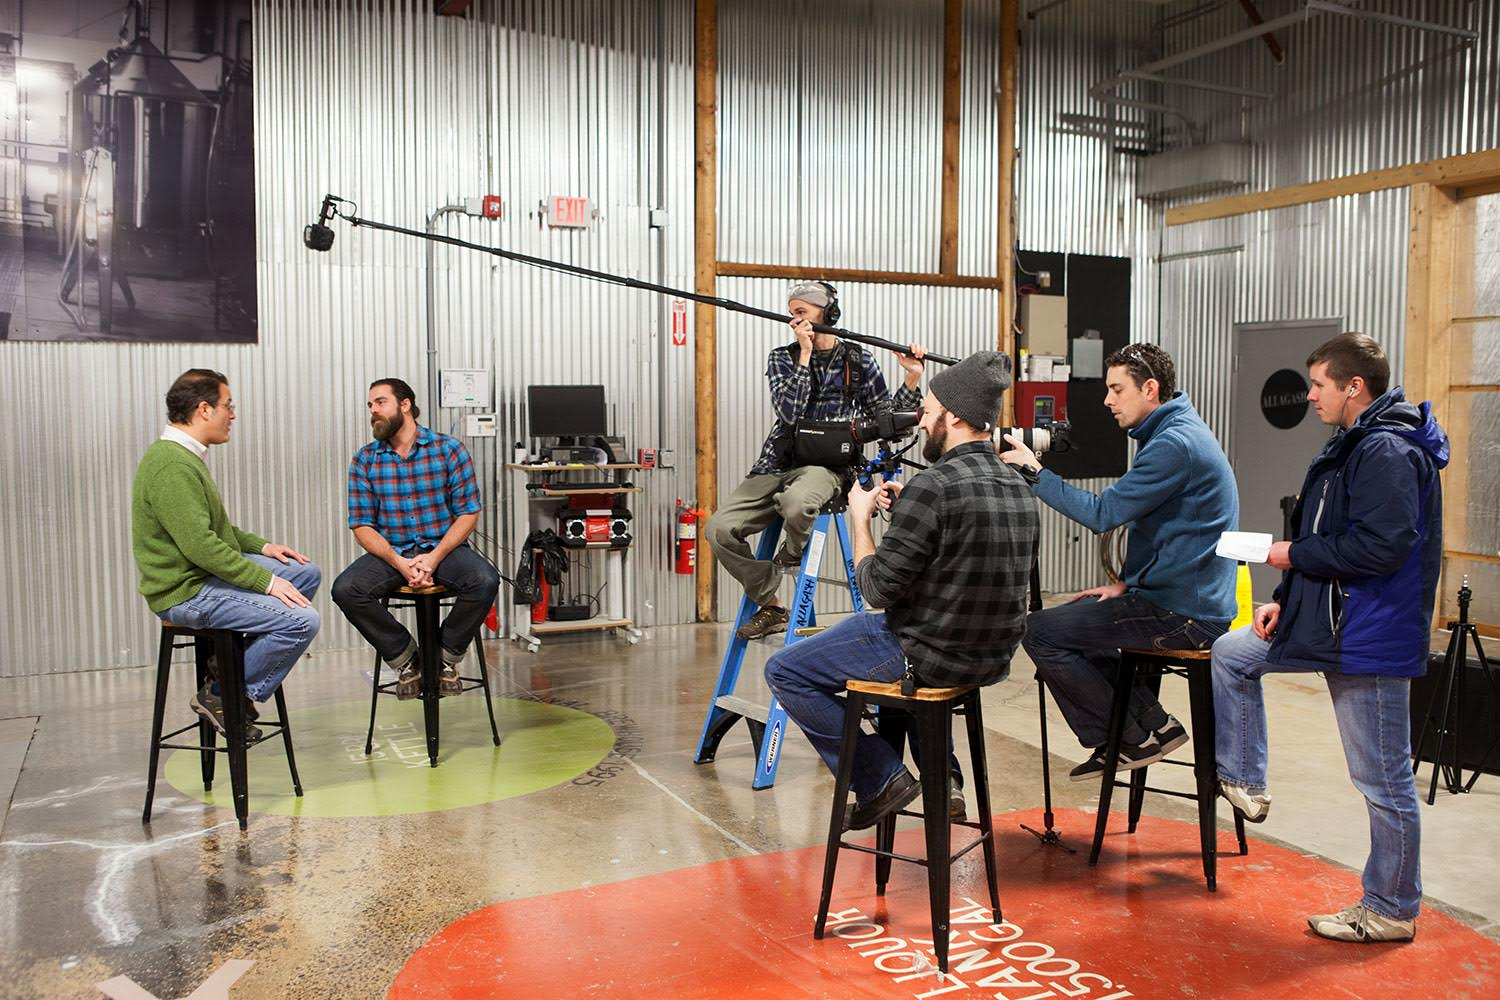 Behind the scenes look at Local Brew. Host Matt Delamater interviews the owner of Allagash Brewing Company, Rob Tod.